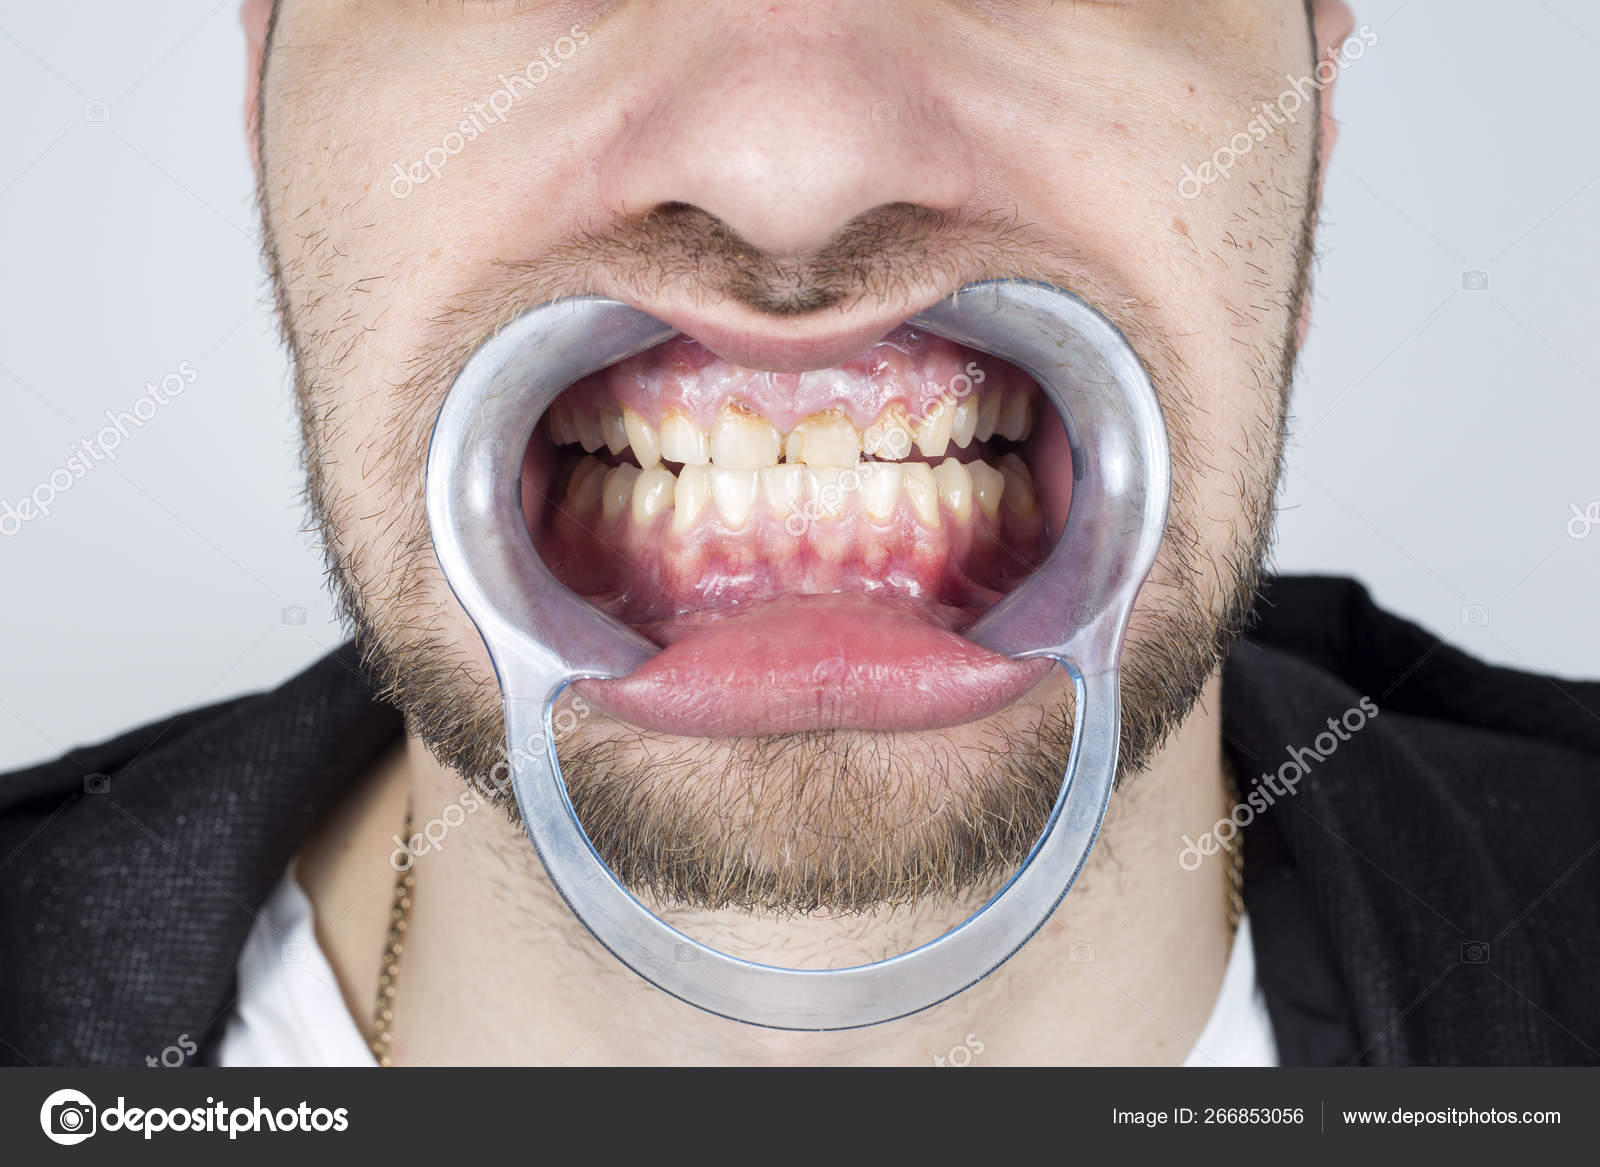 Tooth Decay Tartar Build Contribute Inflammation Gums Teeth